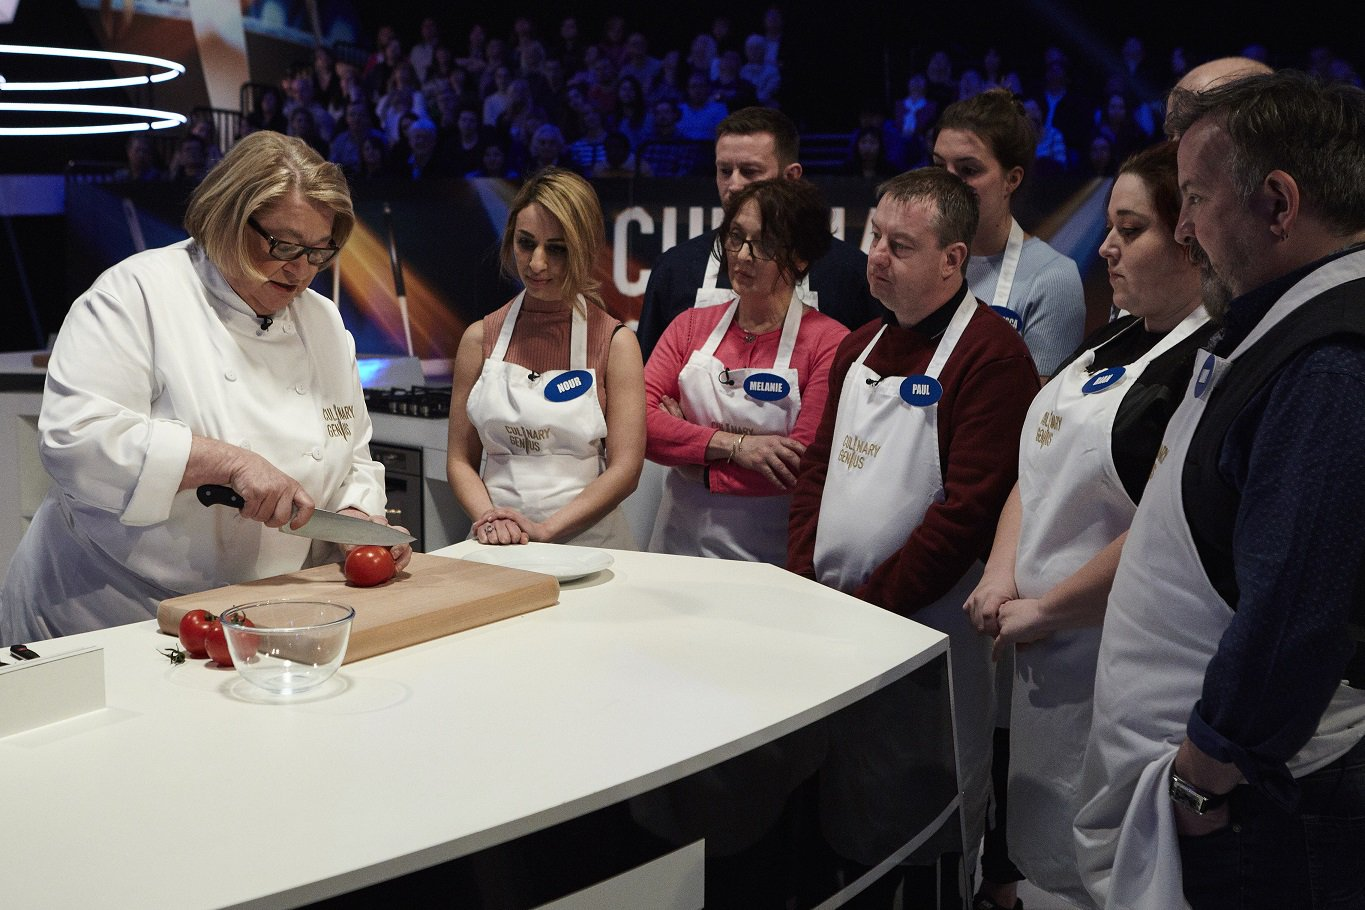 Time for another episode of #CulinaryGenius on @ITV at 3 PM today with this week's host @RosemaryShrager ! https://t.co/MwHqClZmaO